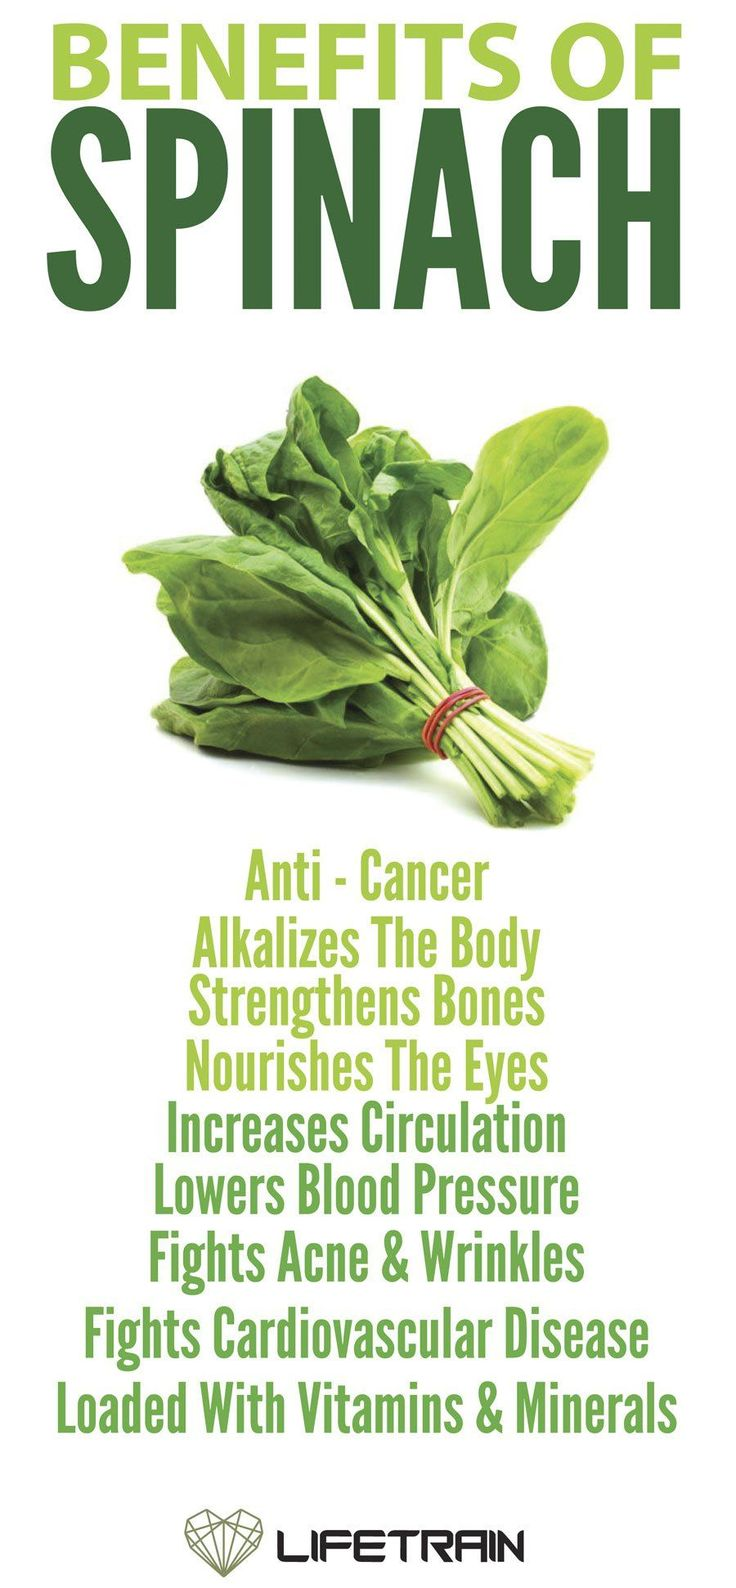 Benefits of Spinach. For more information, please visit www.unlimitedenergynow.com.